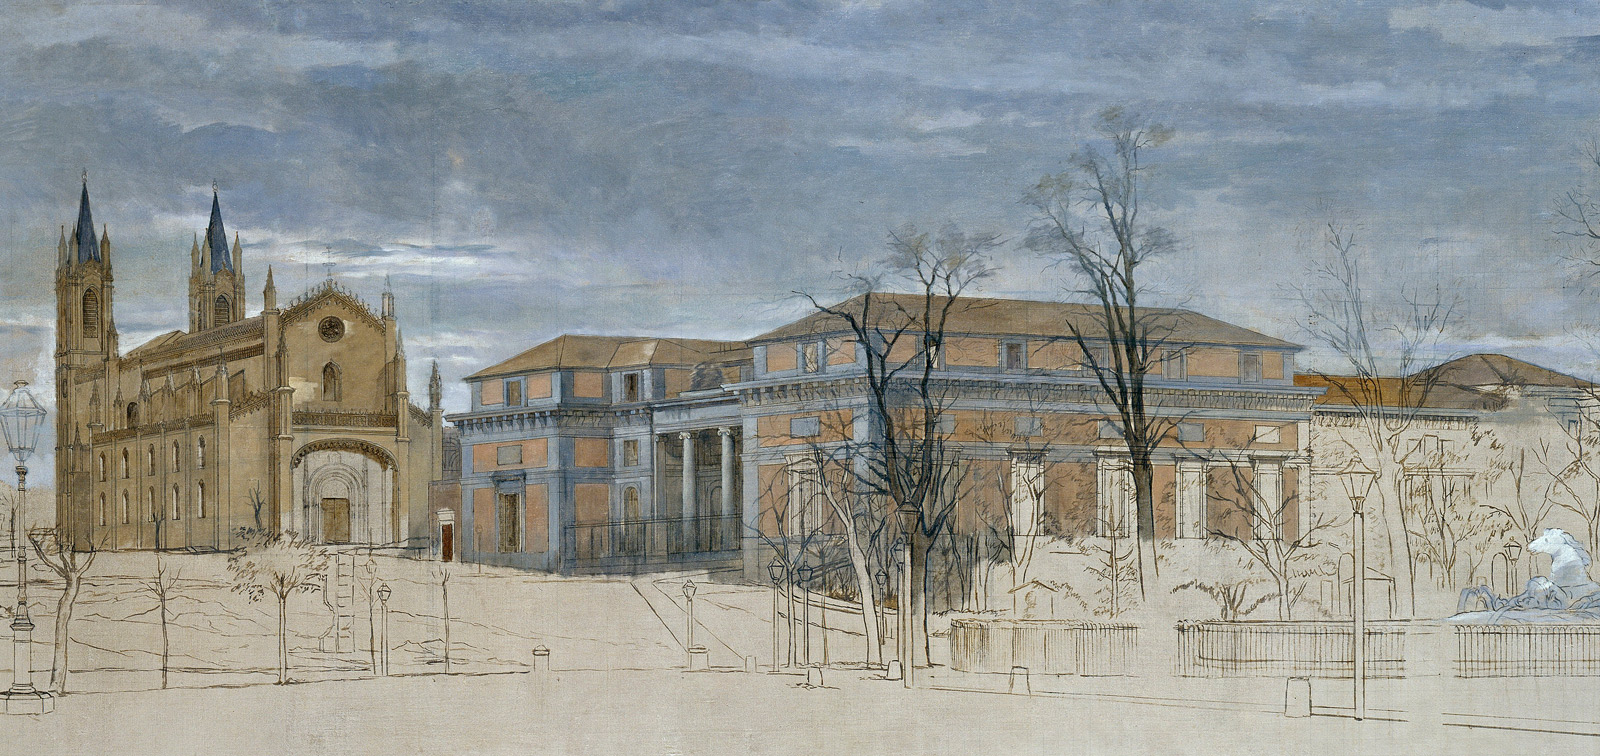 History of the Museo del Prado and its Buildings